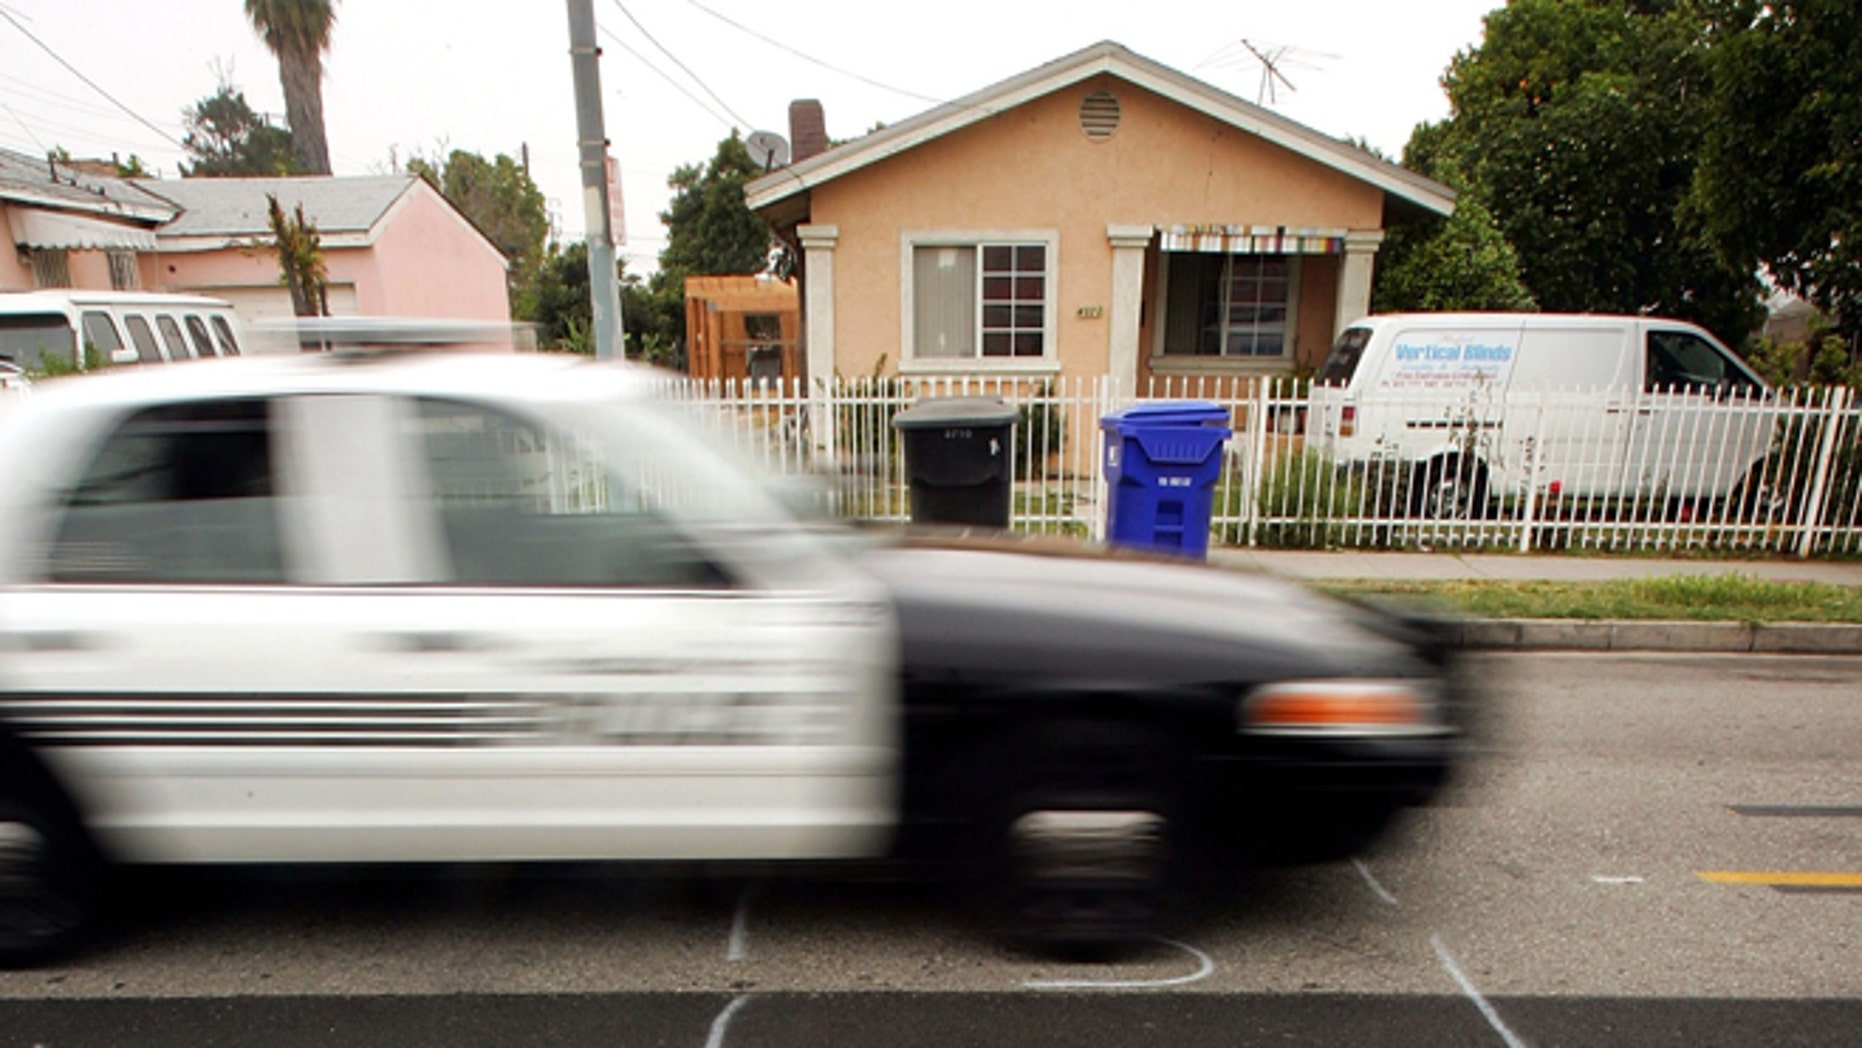 """MAYWOOD, CA - MAY 17:  A police car drives down a residential street marked to be dug up for service with shorthand letters for """"underground service alert"""" on May 17, 2006 in the Los Angeles-area city of Maywood, California. According to reports, the Maywood City Council has declared the municipality a """"sanctuary"""" for illegal immigrants. The city has done away with the police department's traffic division after receiving complaints that officers were targeting illegal immigrants which has made it more difficult for police to tow cars whose owners do not have driver's licenses. The city also officially opposed a proposed federal law that would have criminalized illegal immigration and forced local police to enforce immigration law. Approximately 96 percent of the city's population of about 29,000 is Latino and more than half are foreign-born.  (Photo by David McNew/Getty Images)"""